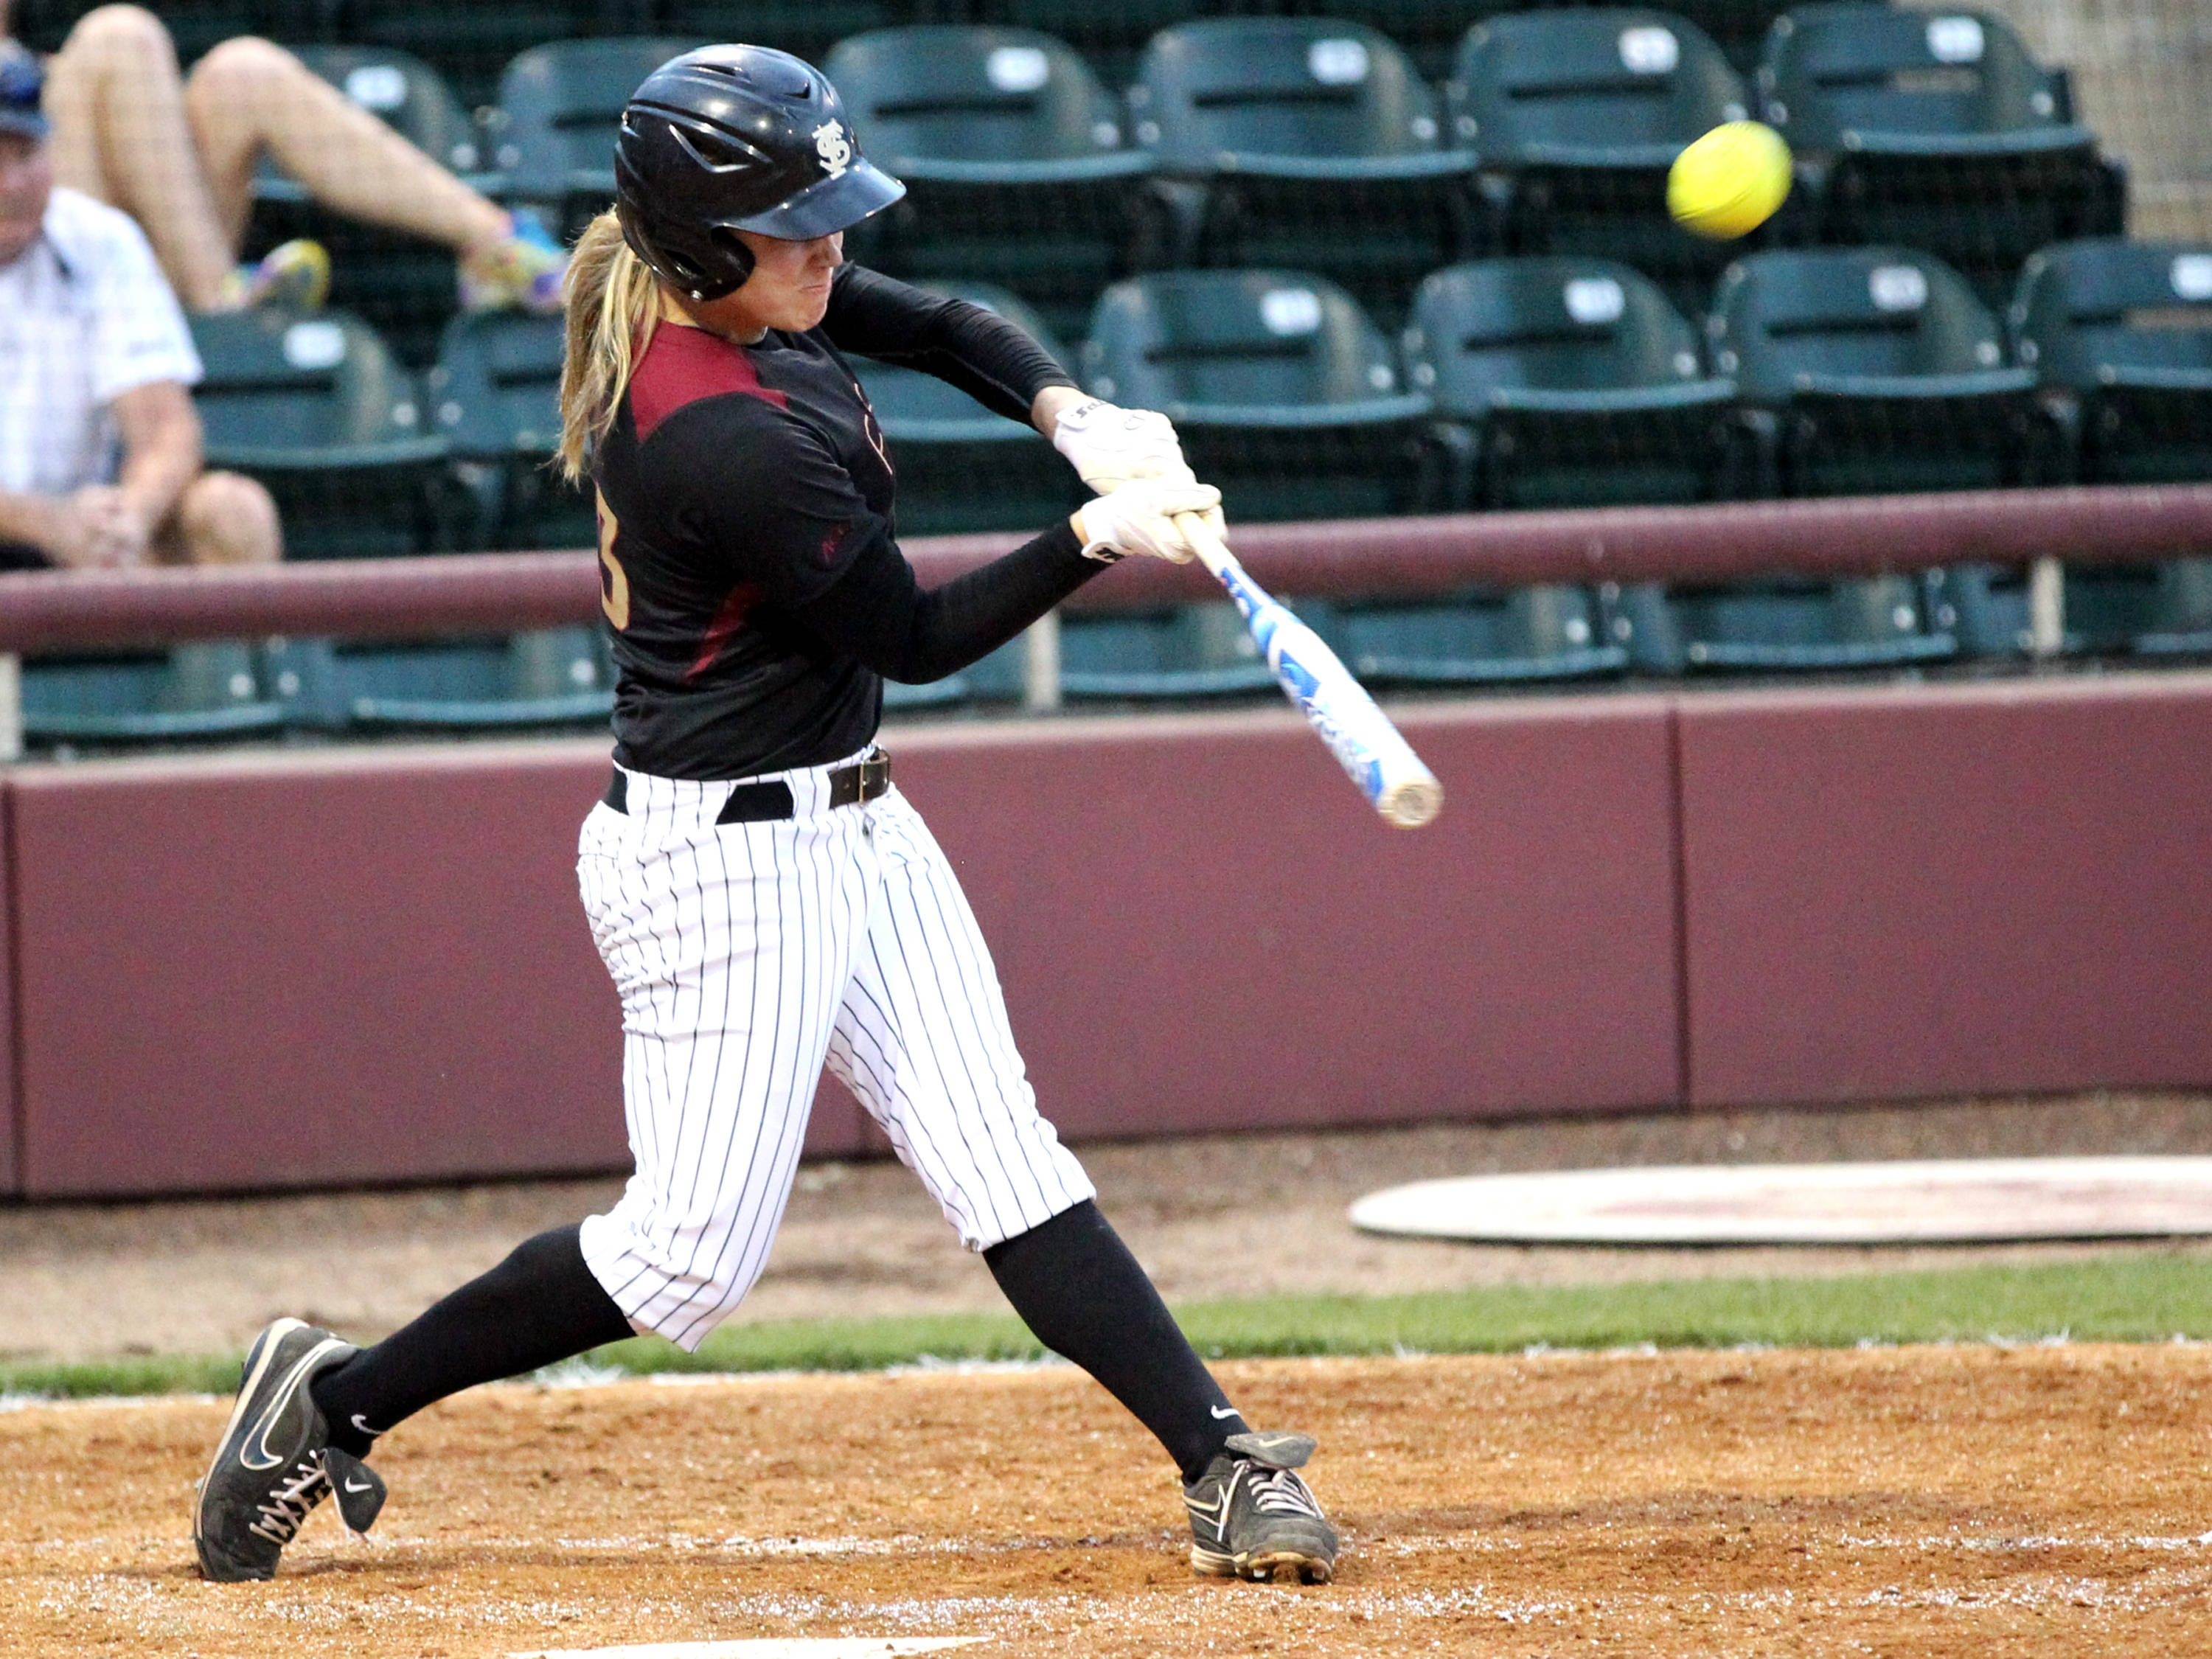 Kelly Hensley launching her triple, FSU vs Virginia, 04/13/13 . (Photo by Steve Musco)